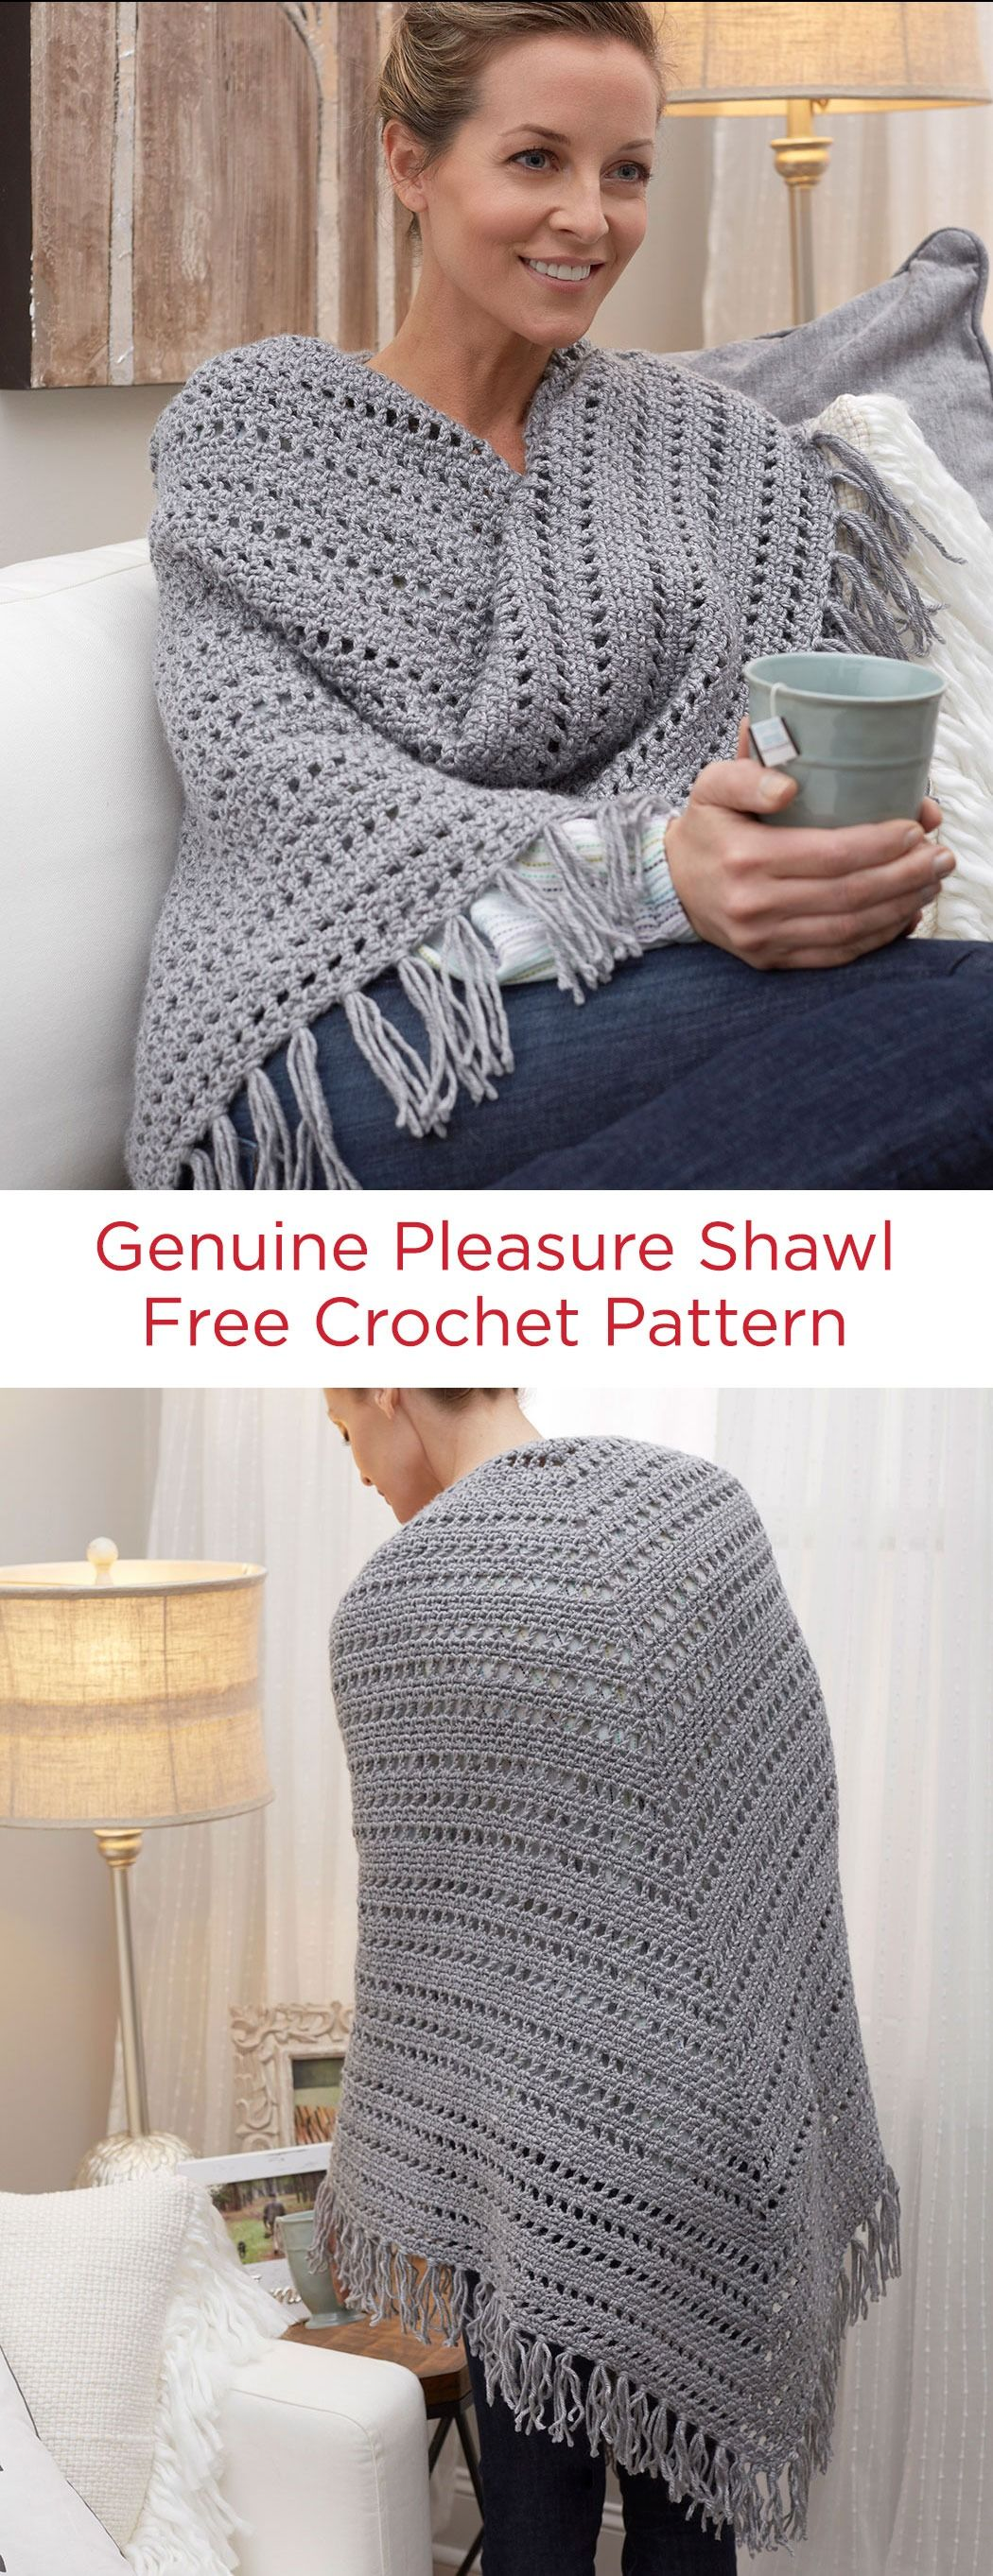 Genuine Pleasure Shawl Free Crochet Pattern In Red Heart